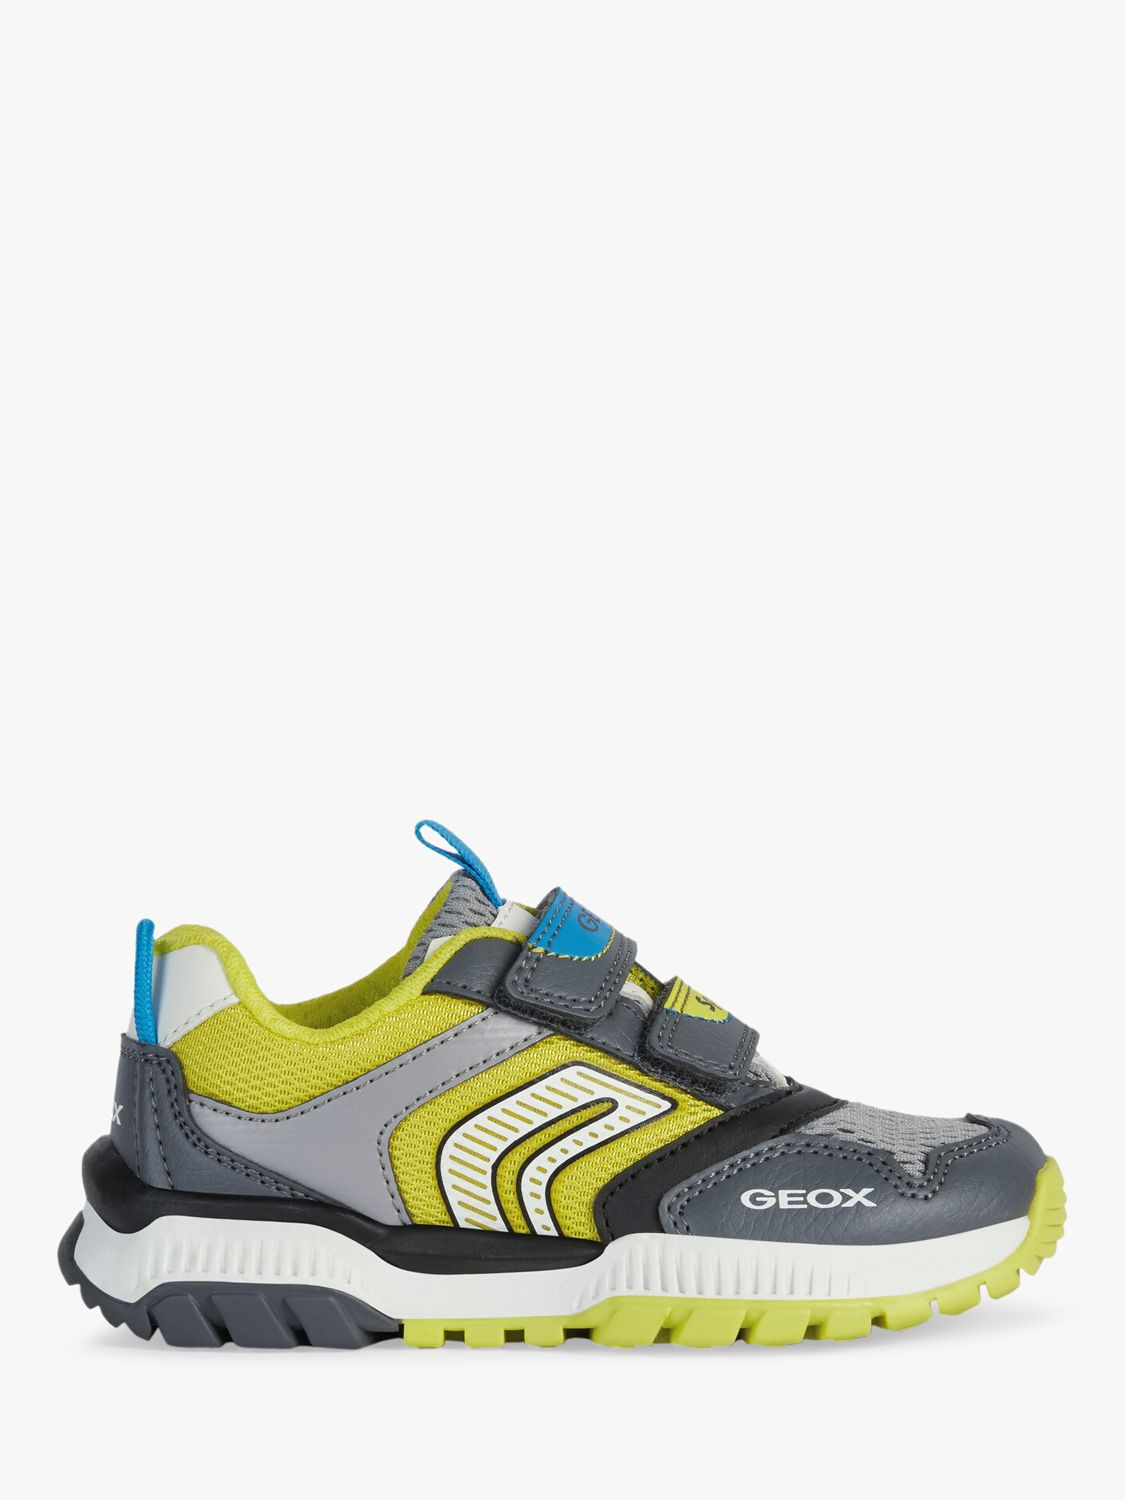 Geox Geox Children's Tuono Riptape Trainers, Grey/Lime